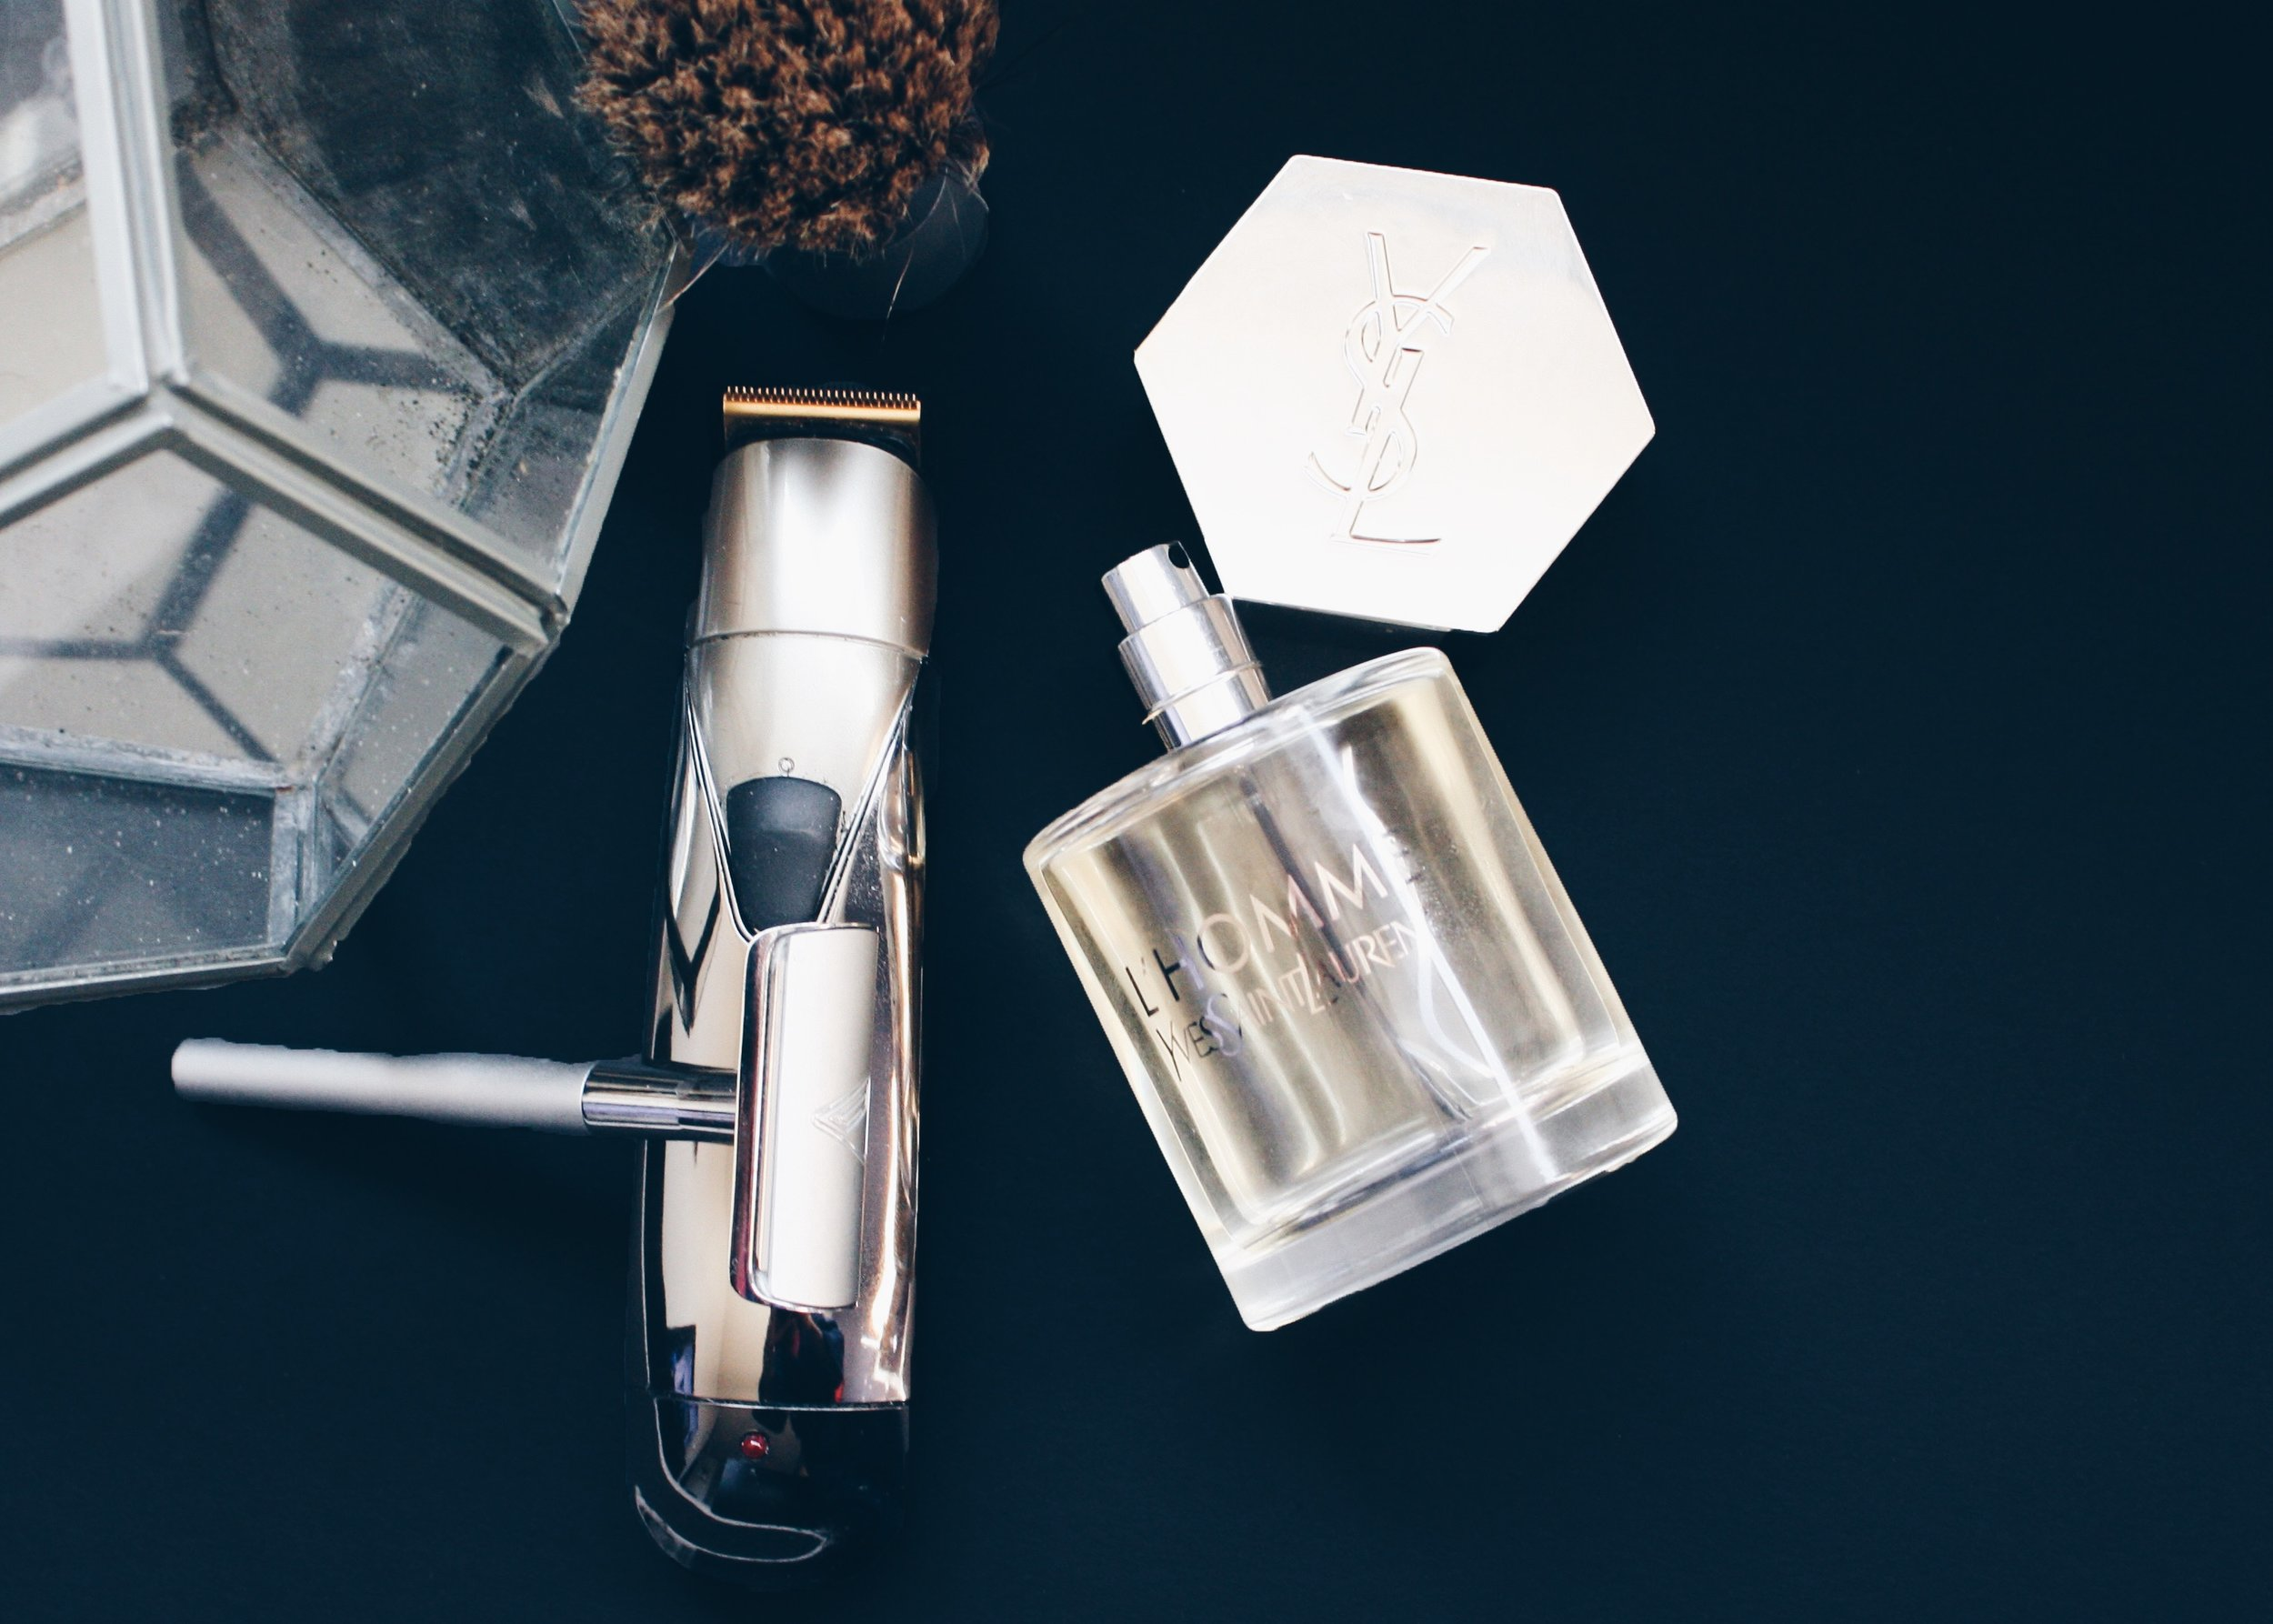 sam-c-perry-5-must-have-grooming-gadgets-for-men.jpg